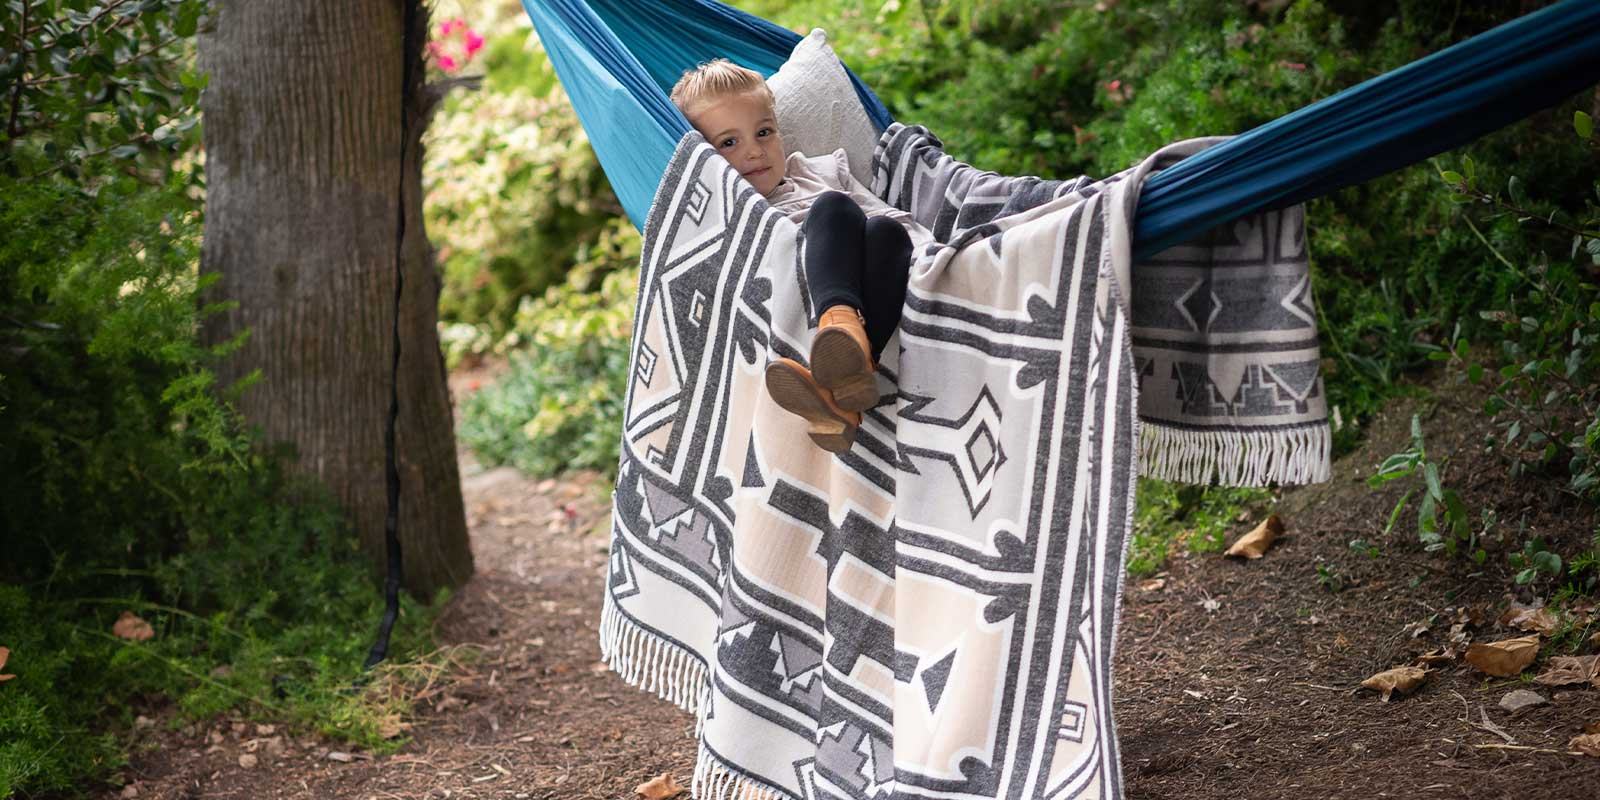 The Ndebele African camping blanket